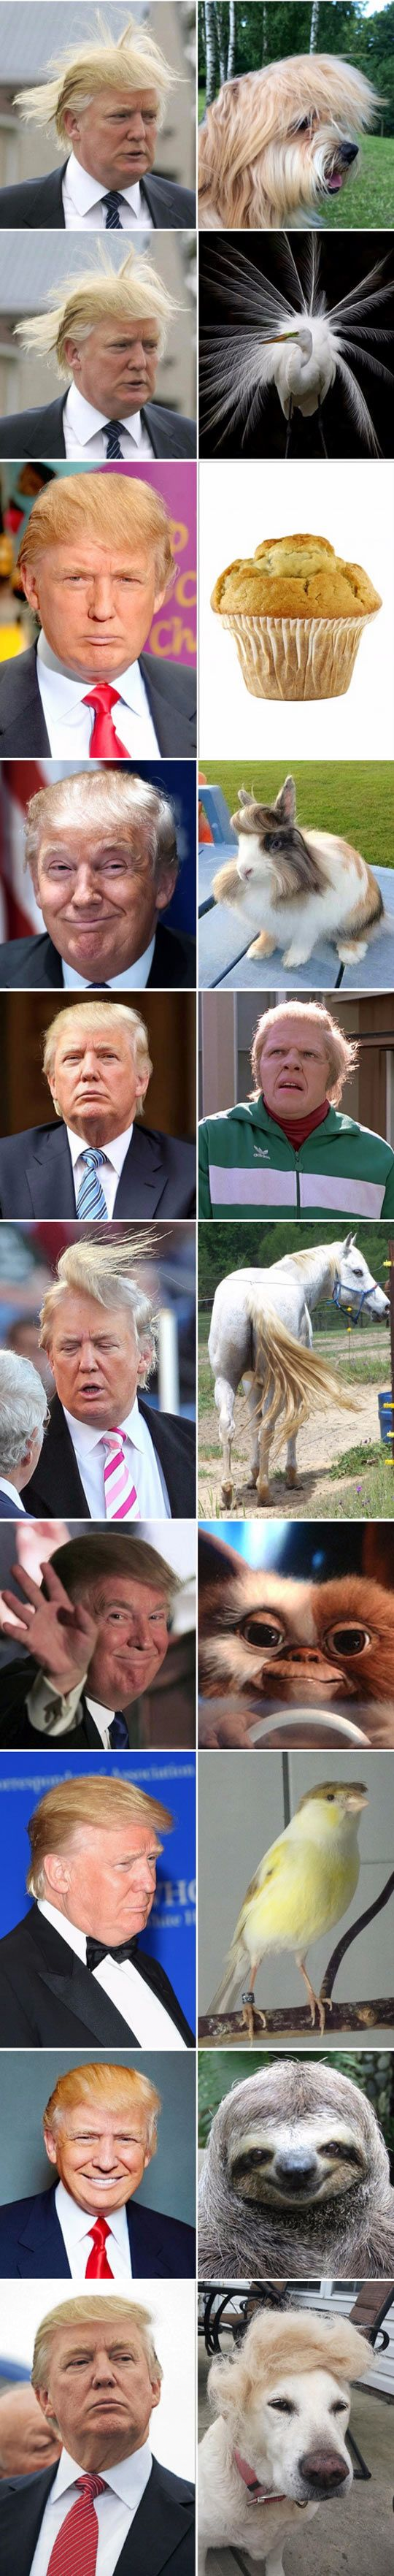 #HRHnadbook Donald Trump hair